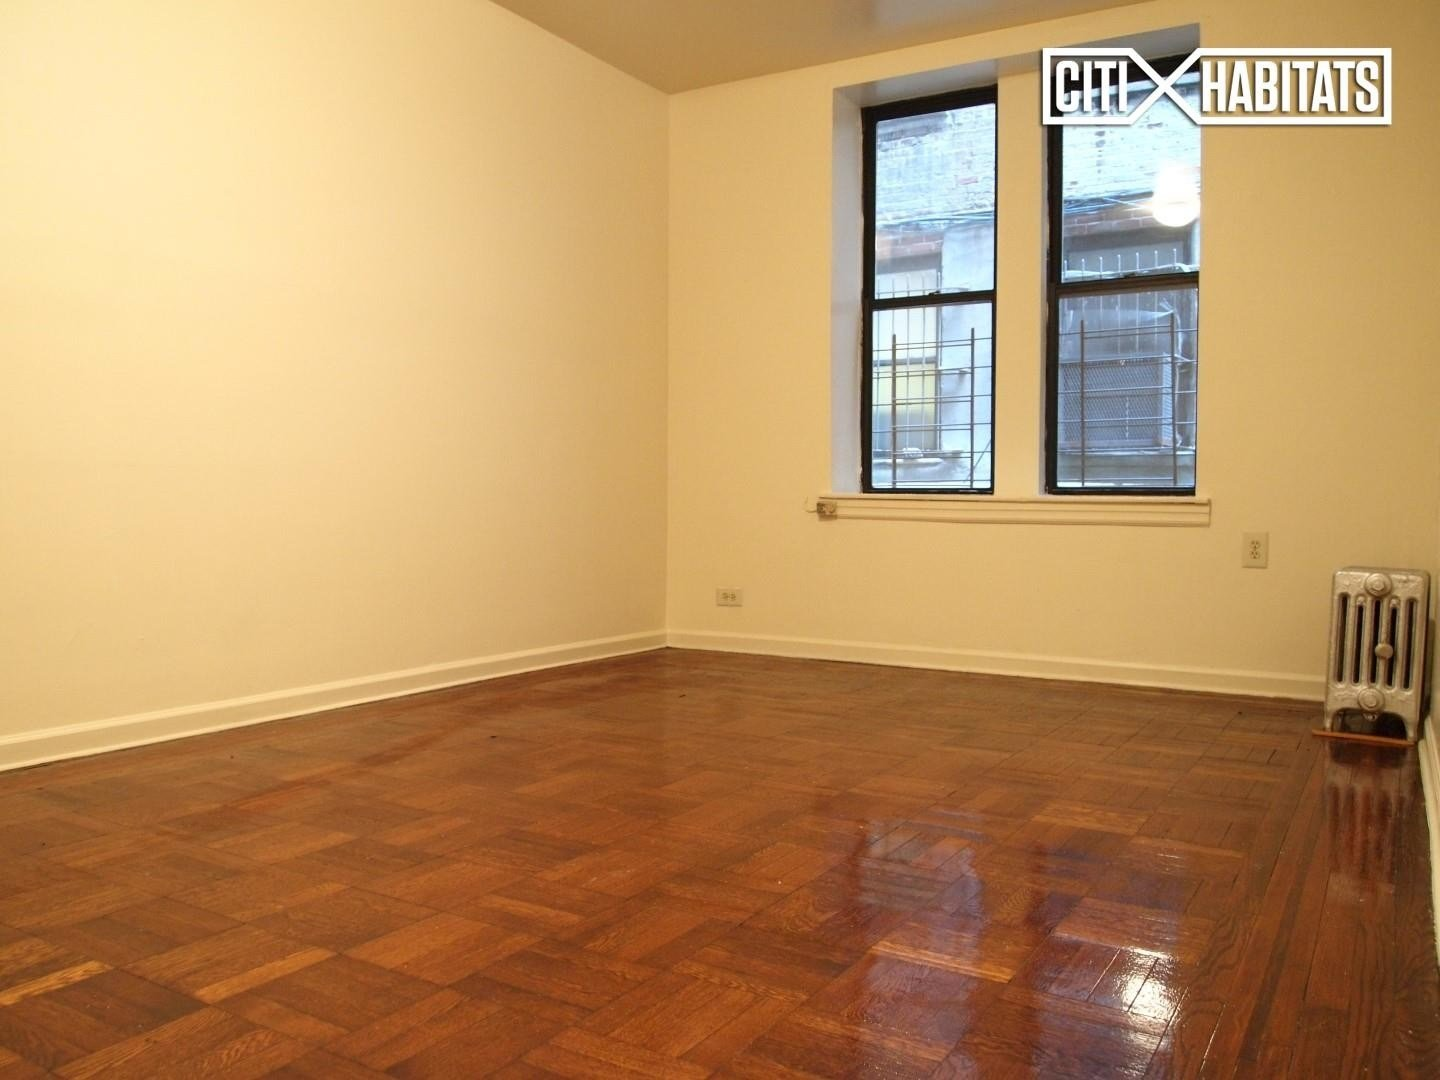 Best Walton Ave 1J Bronx Ny 10452 1 Bedroom Apartment For With Pictures Original 1024 x 768